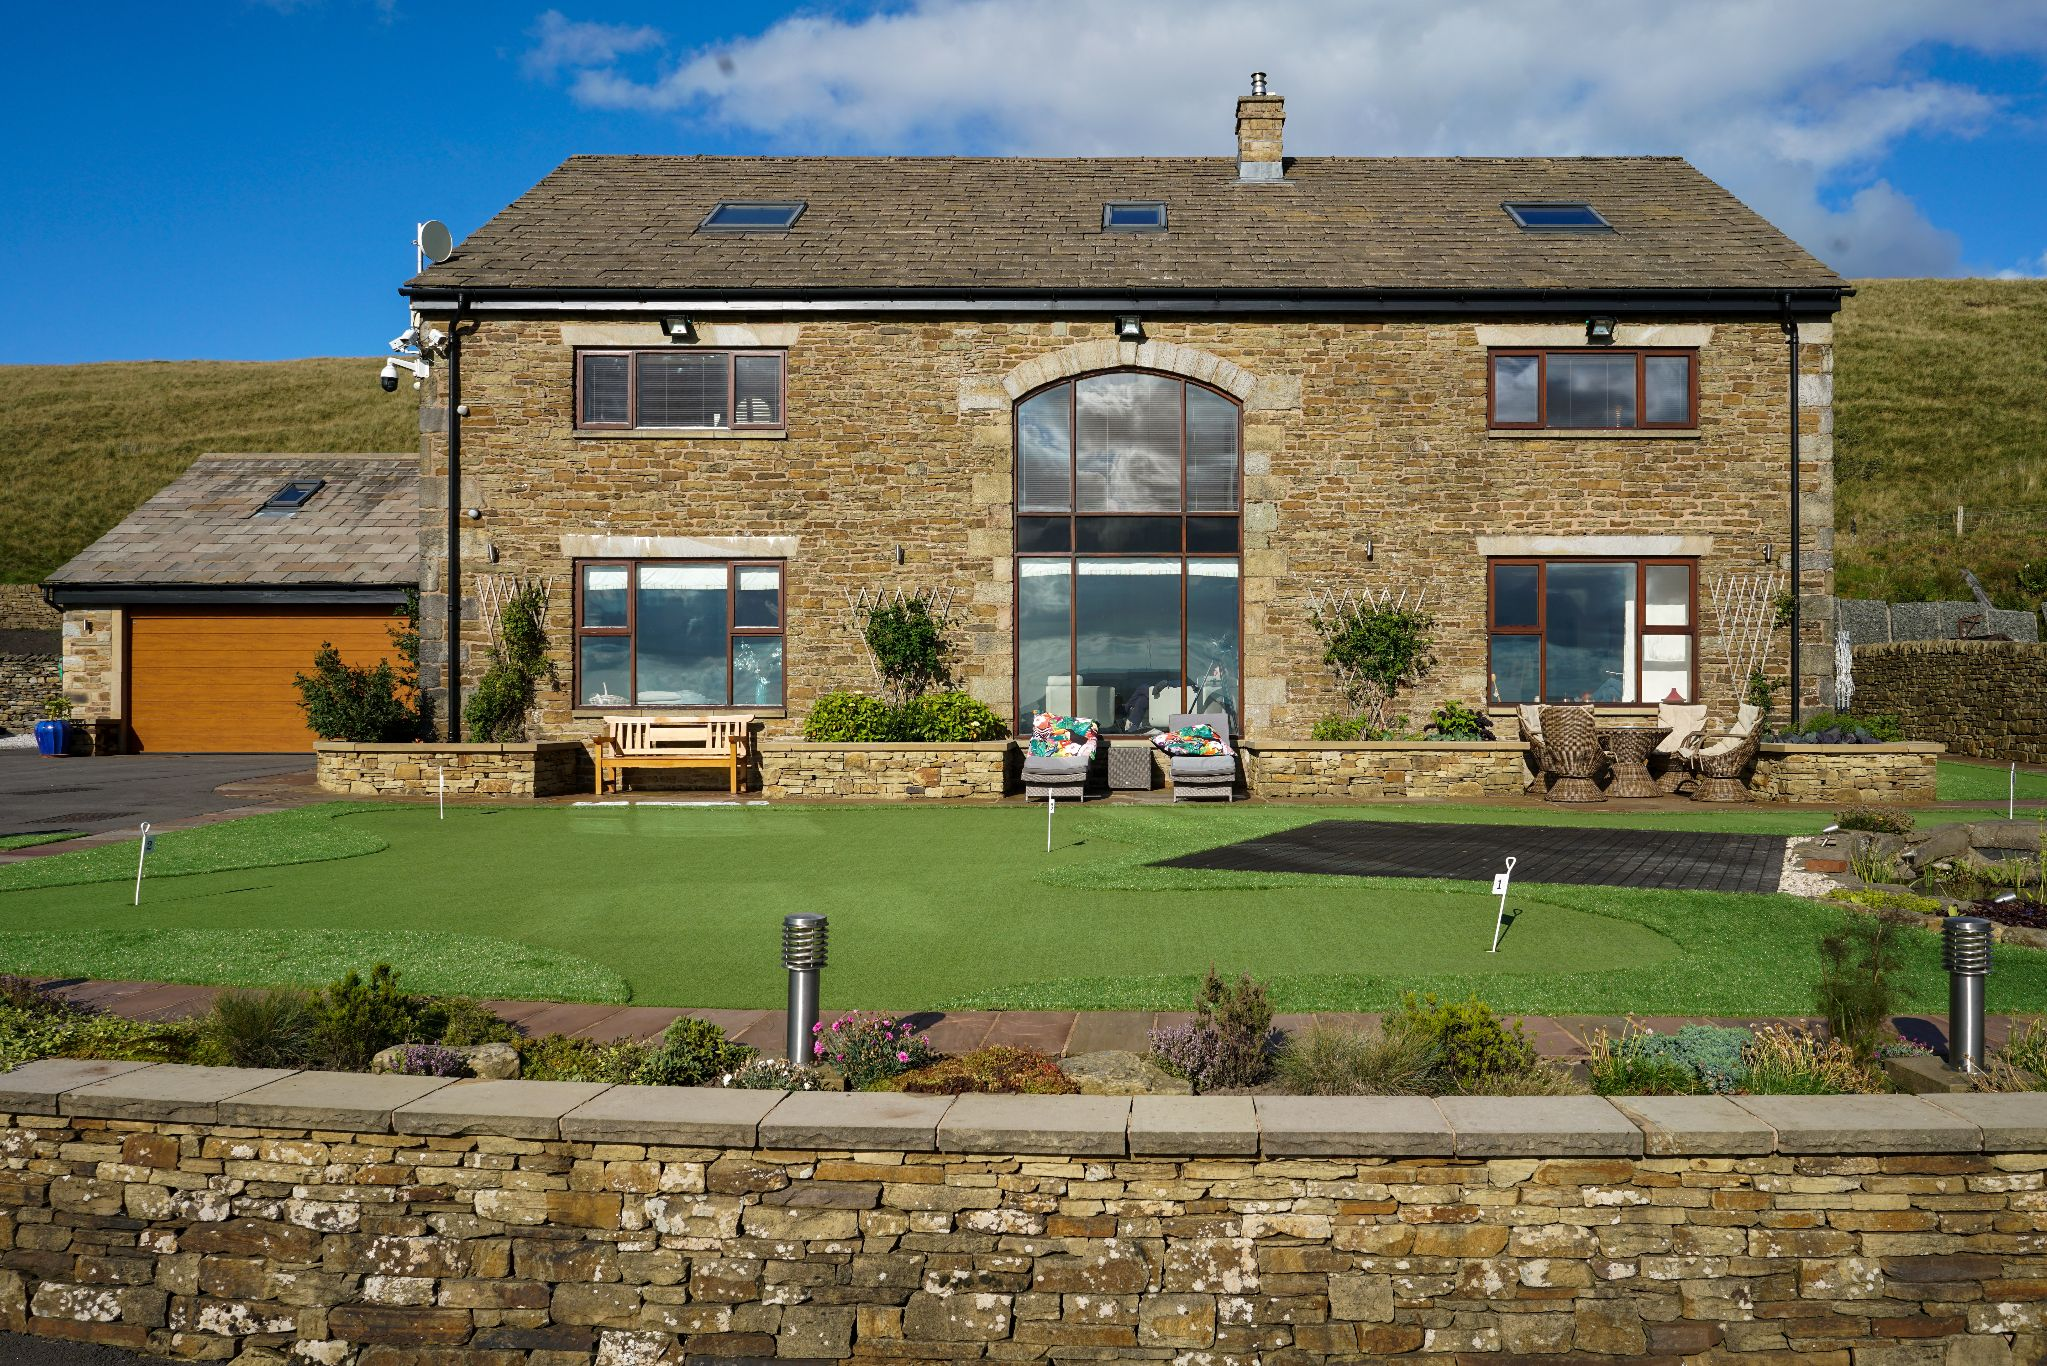 5 bedroom barn conversion house For Sale in Bolton - Photograph 90